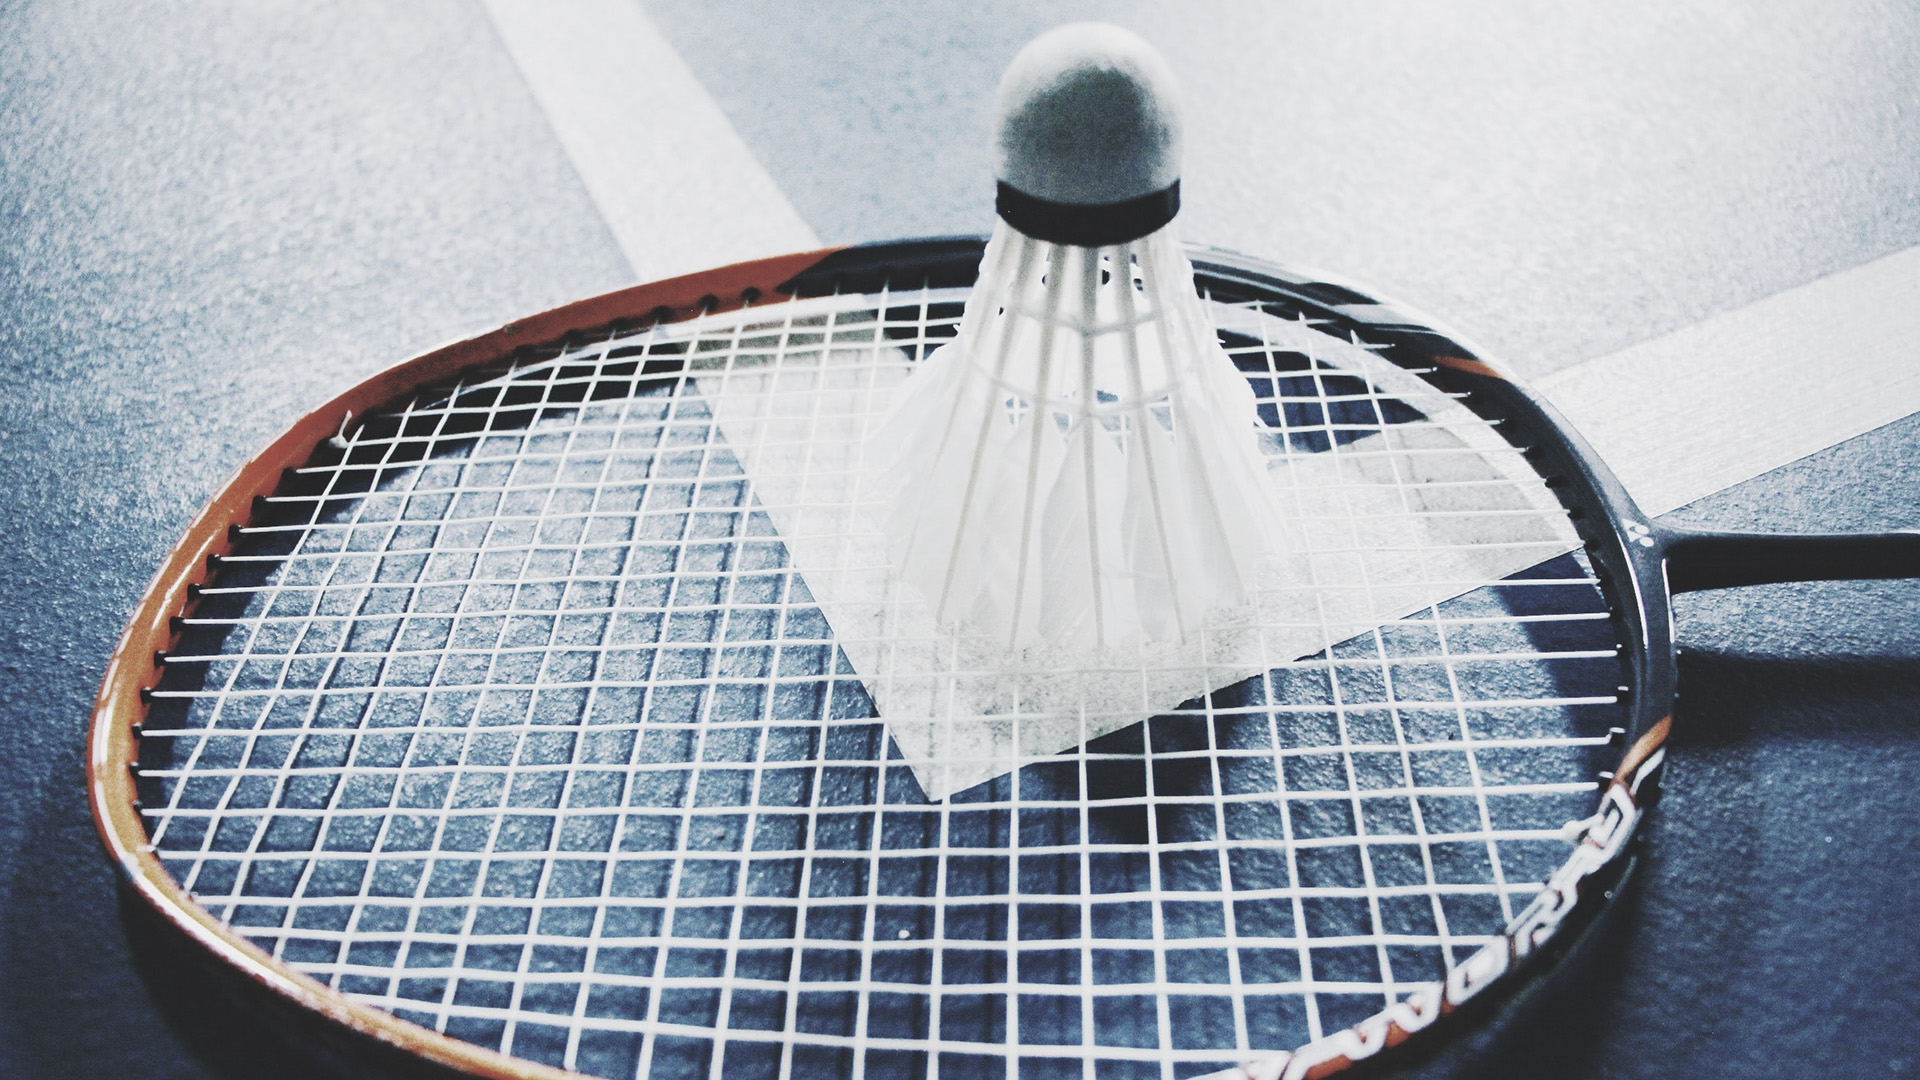 India To Host Badminton World Federation World Championships In 2026